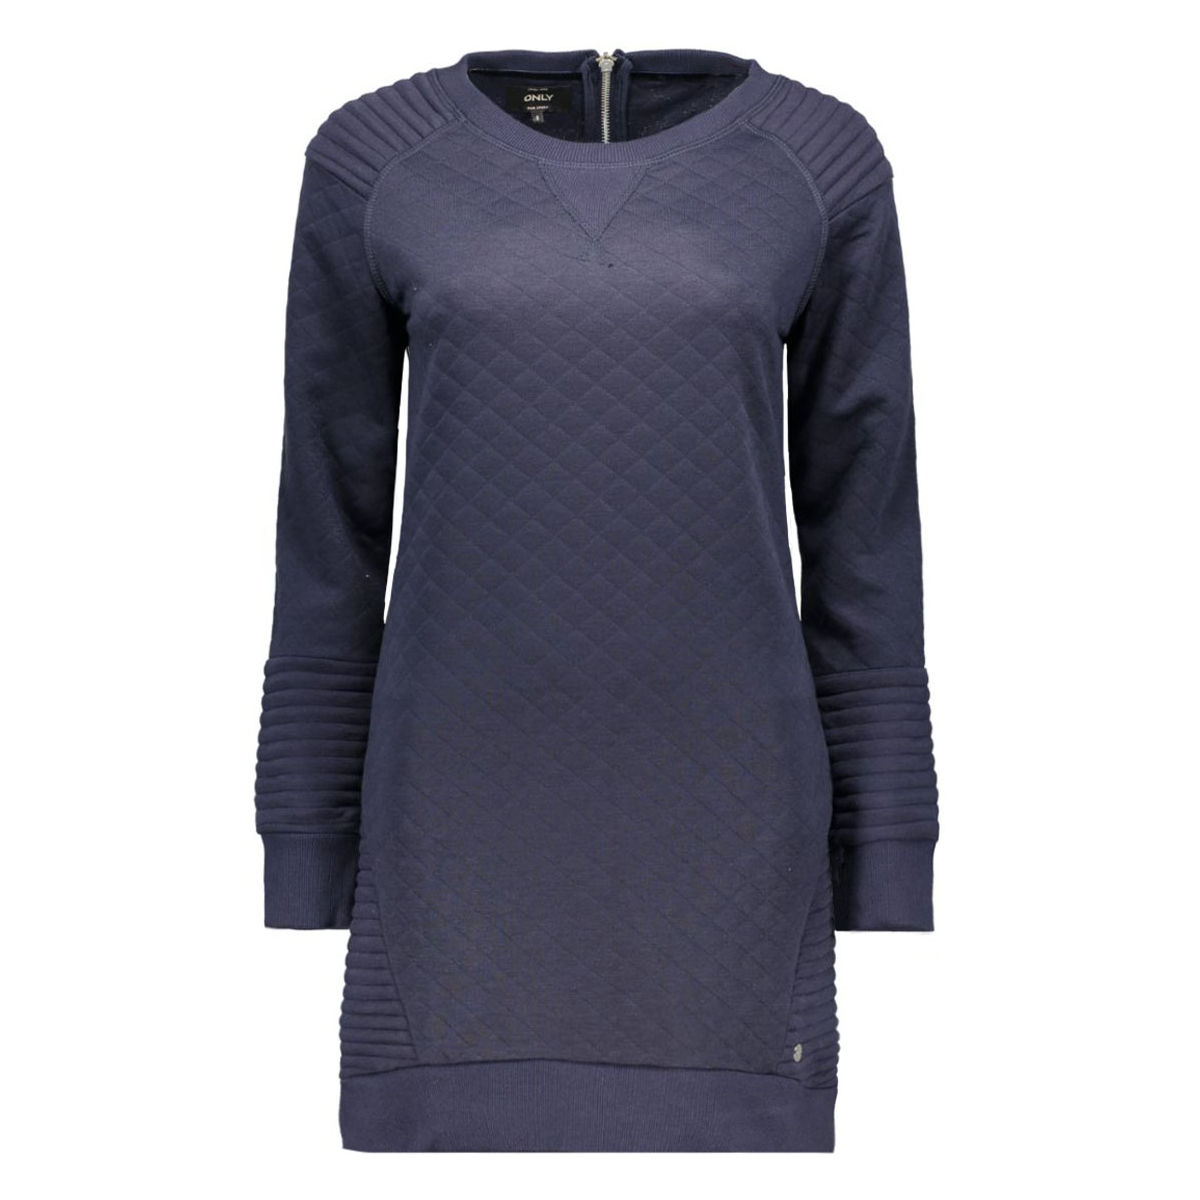 onlgilda l/s dress swt 15125137 only jurk night sky/solid